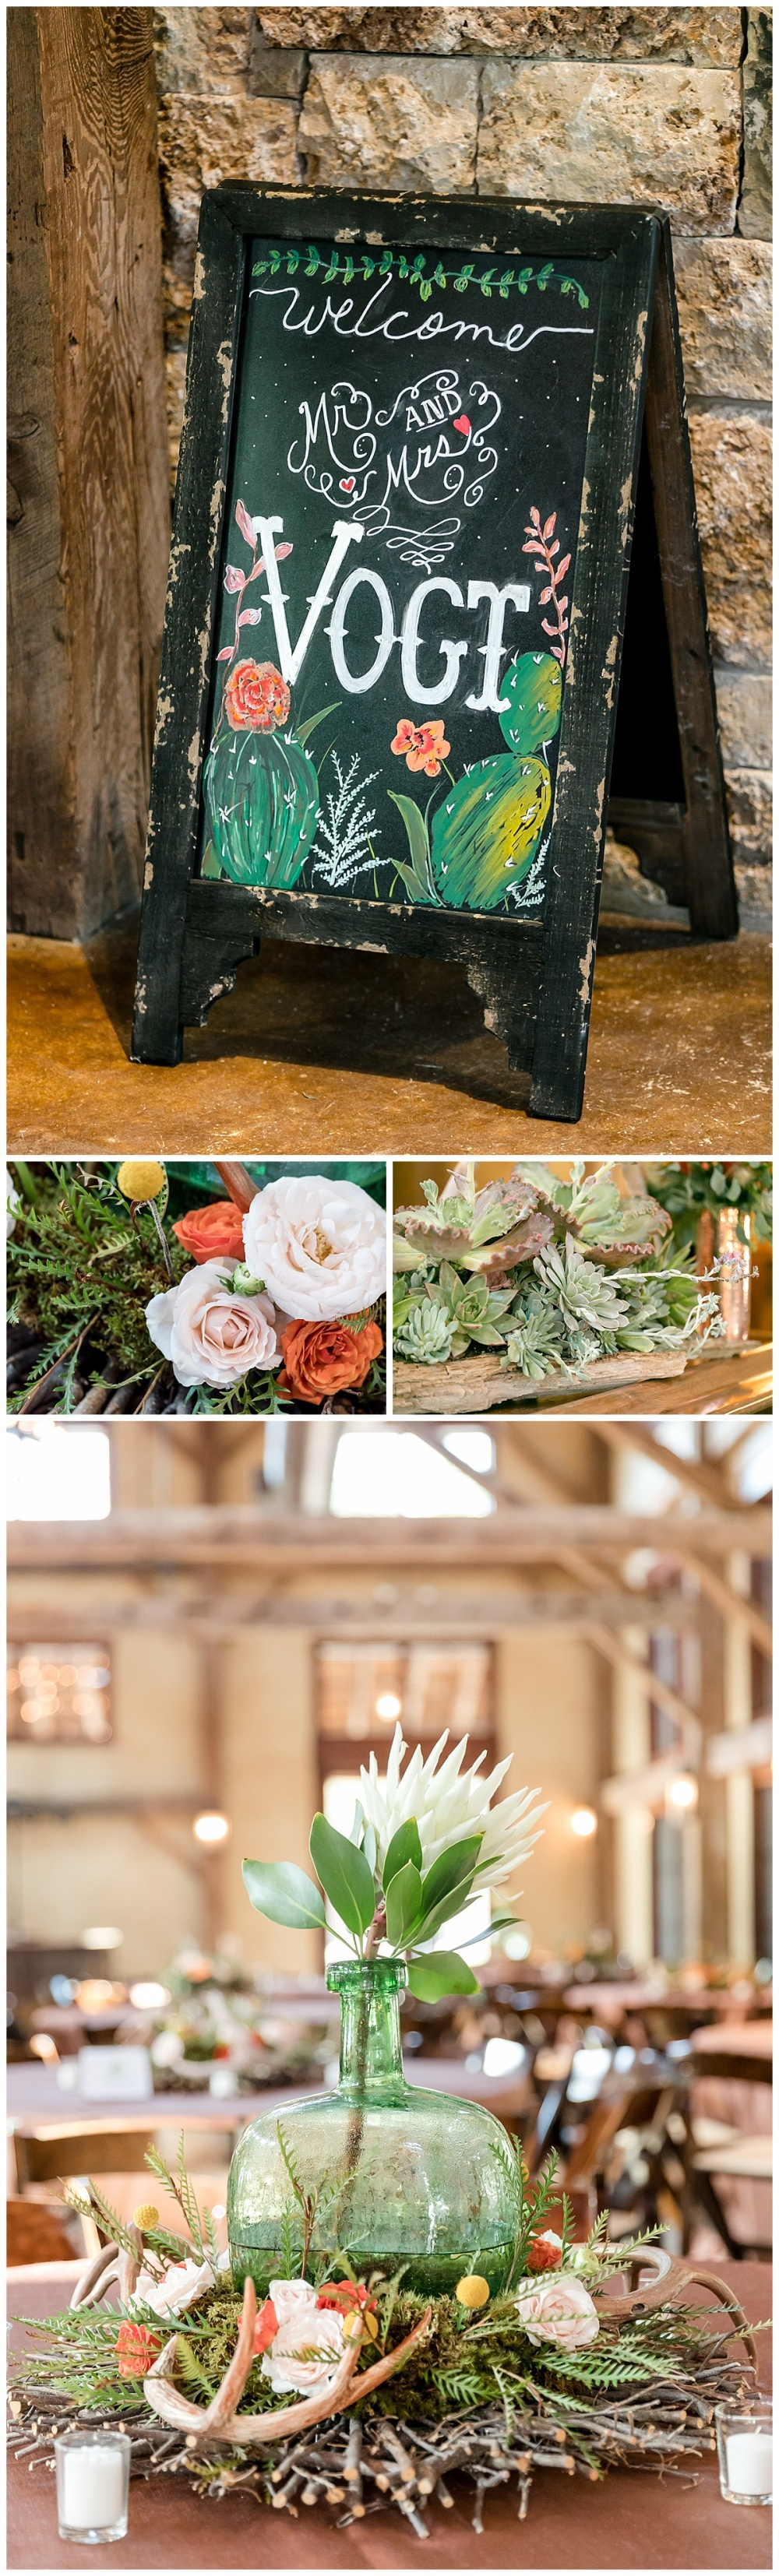 Texas-Wedding-Photographer-Braded-T-Ranch-Kendalia-Bride-Groom-Southwestern-Style-Carly-Barton-Photography-Vogt_0004.jpg